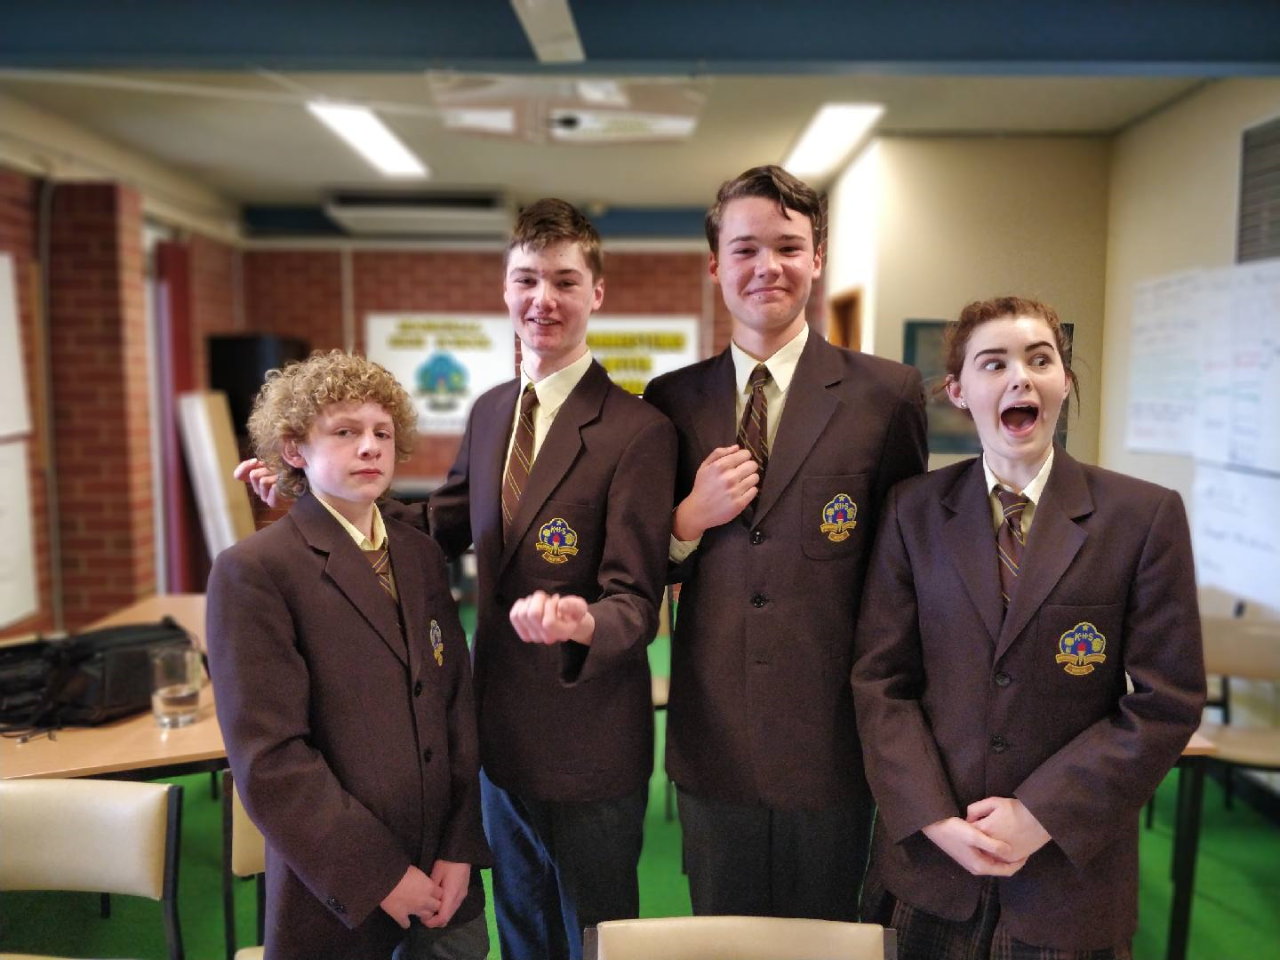 Four very happy students in school uniform in the library